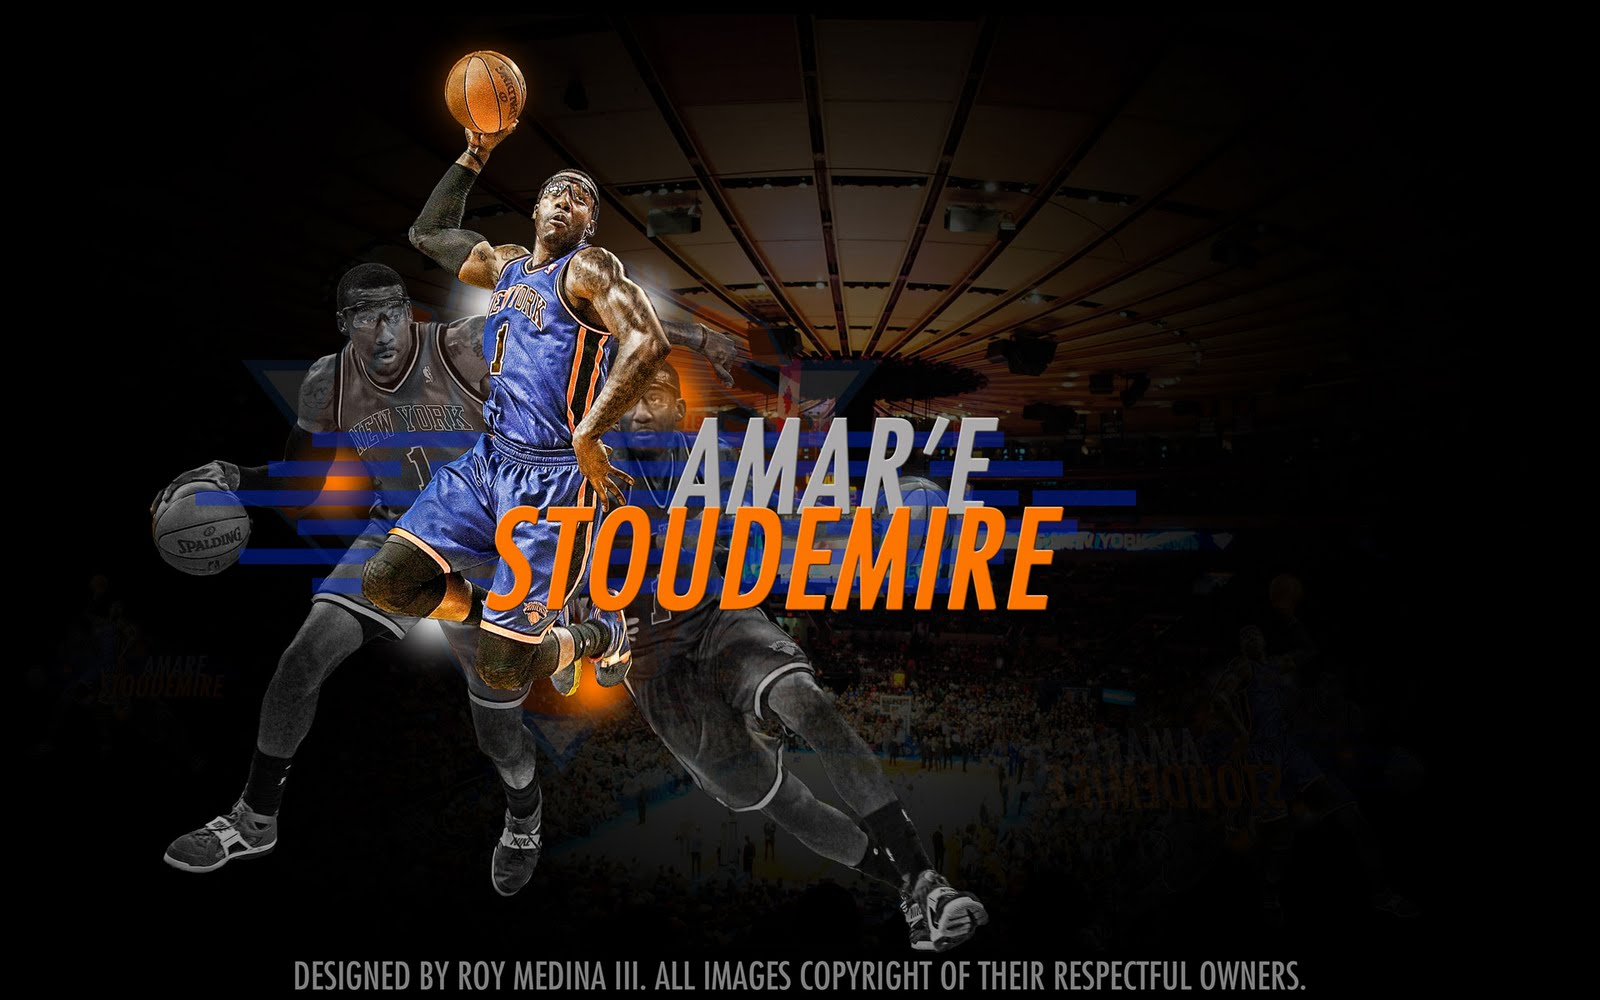 http://3.bp.blogspot.com/-9mz5PBNyRcU/Tib9HVgZLWI/AAAAAAAAHdI/2IGyrkGIDTI/s1600/Amare-Stoudemire-1920x1200-Knicks-Widescreen-Wallpaper-BasketWallpapers.com-.jpg